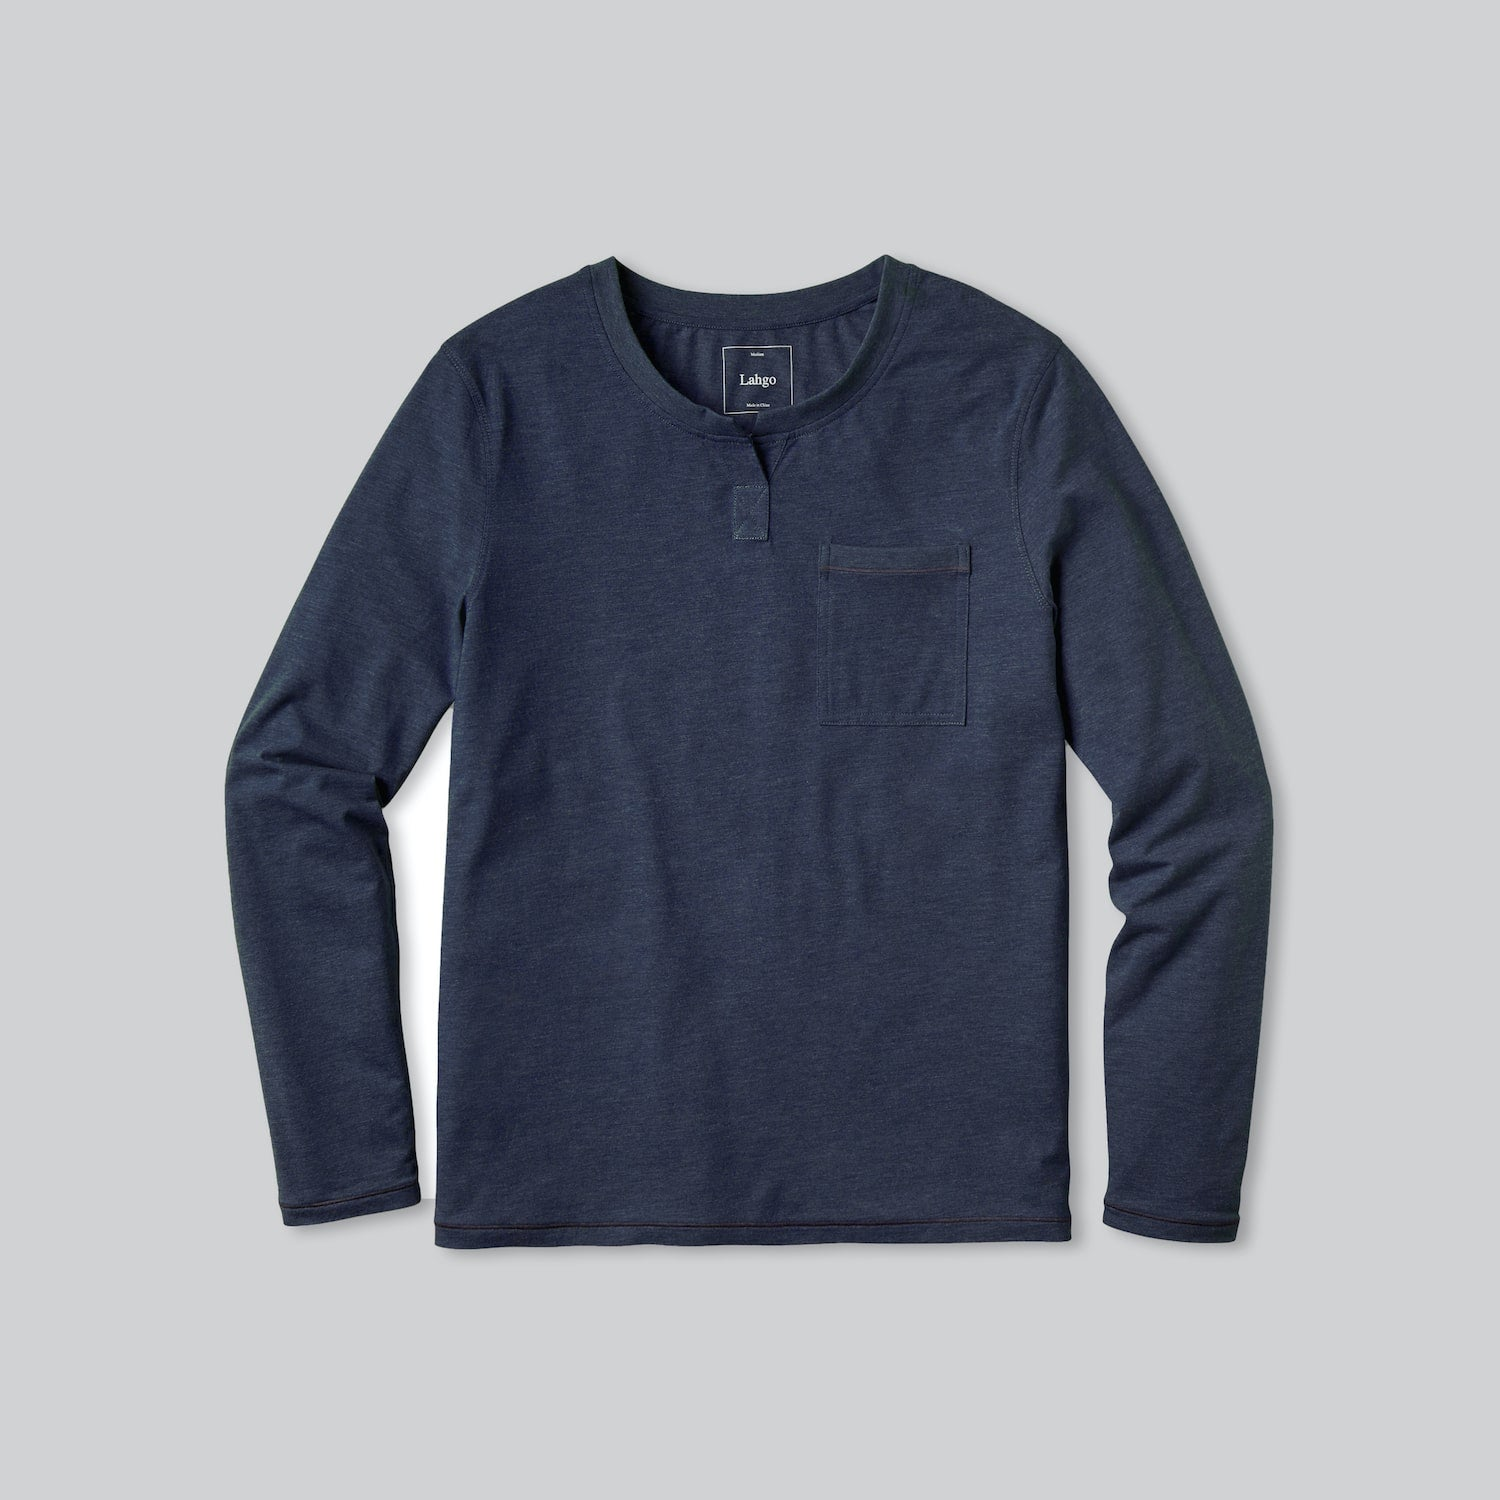 Lahgo Sleepwear Restore Long Sleeve Henley - #Deep Blue Heather